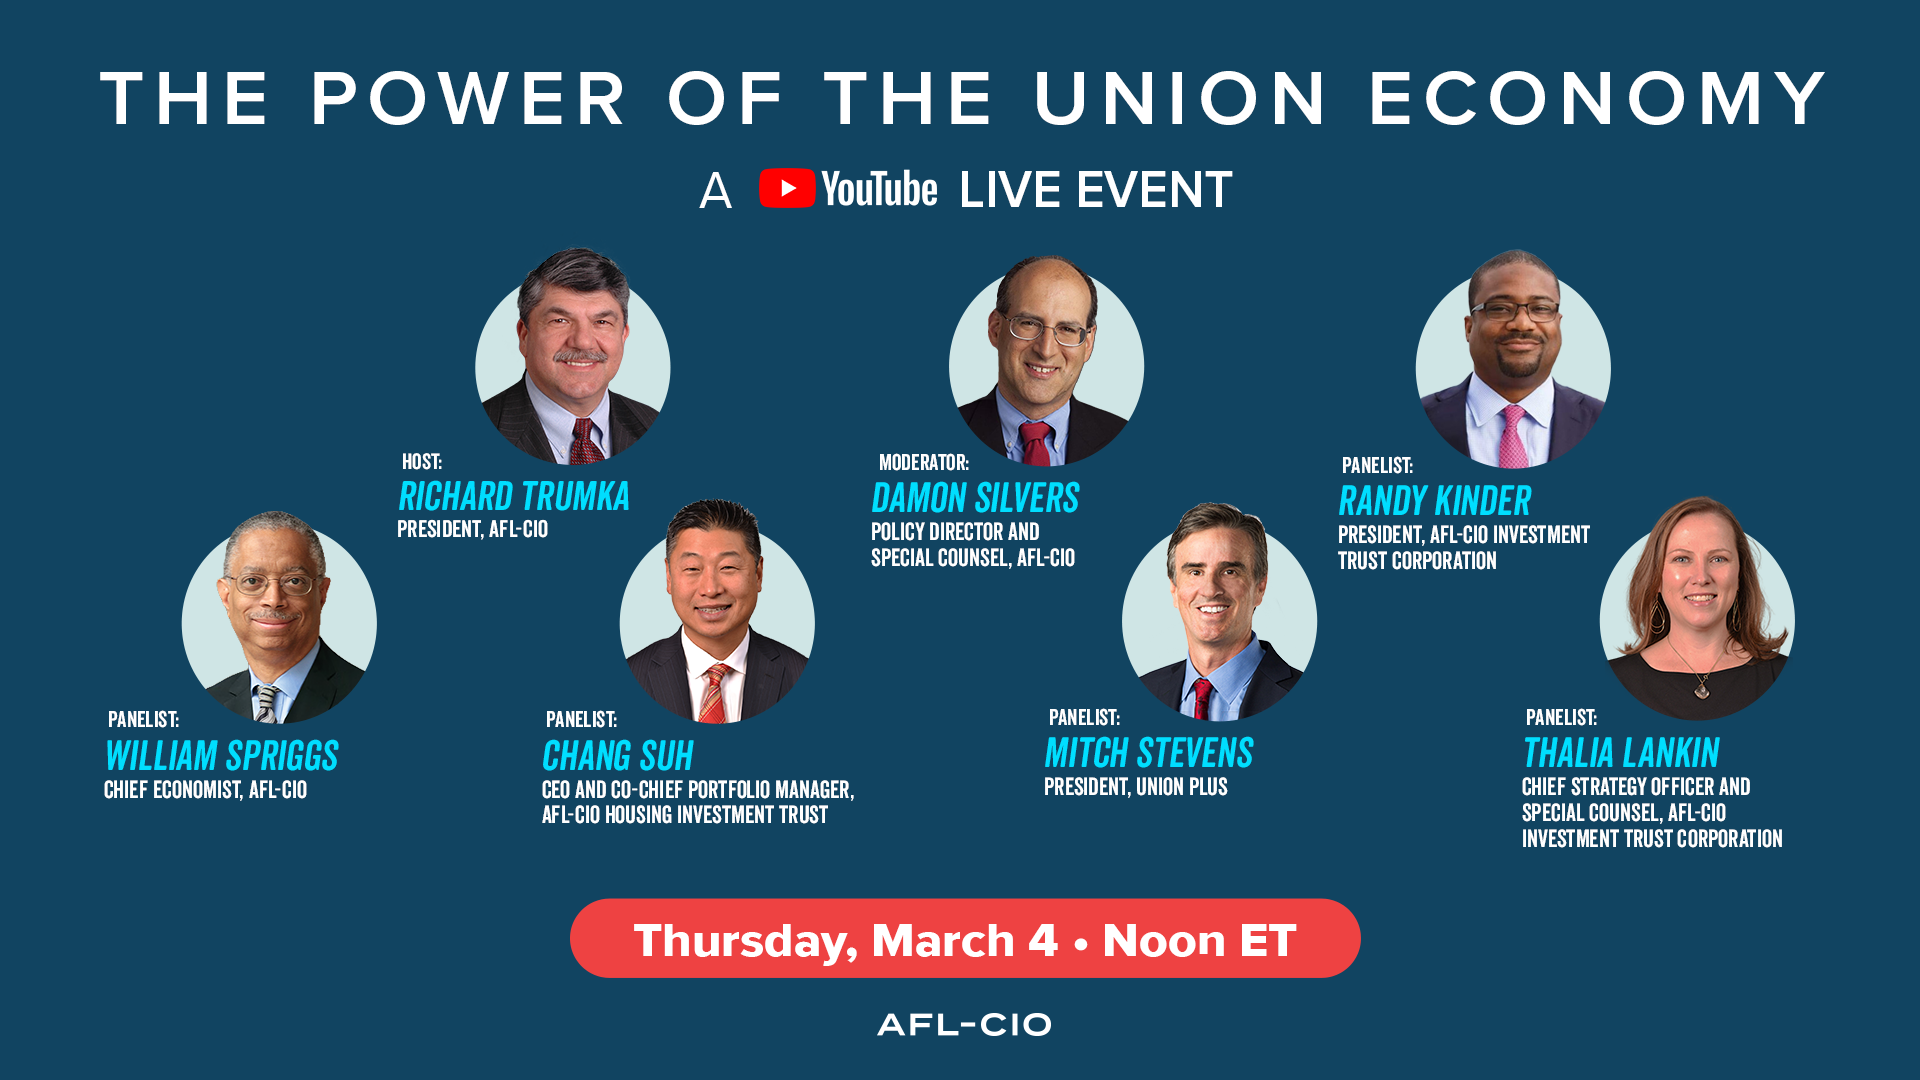 The Power of the Union Economy - A YouTube Live Event